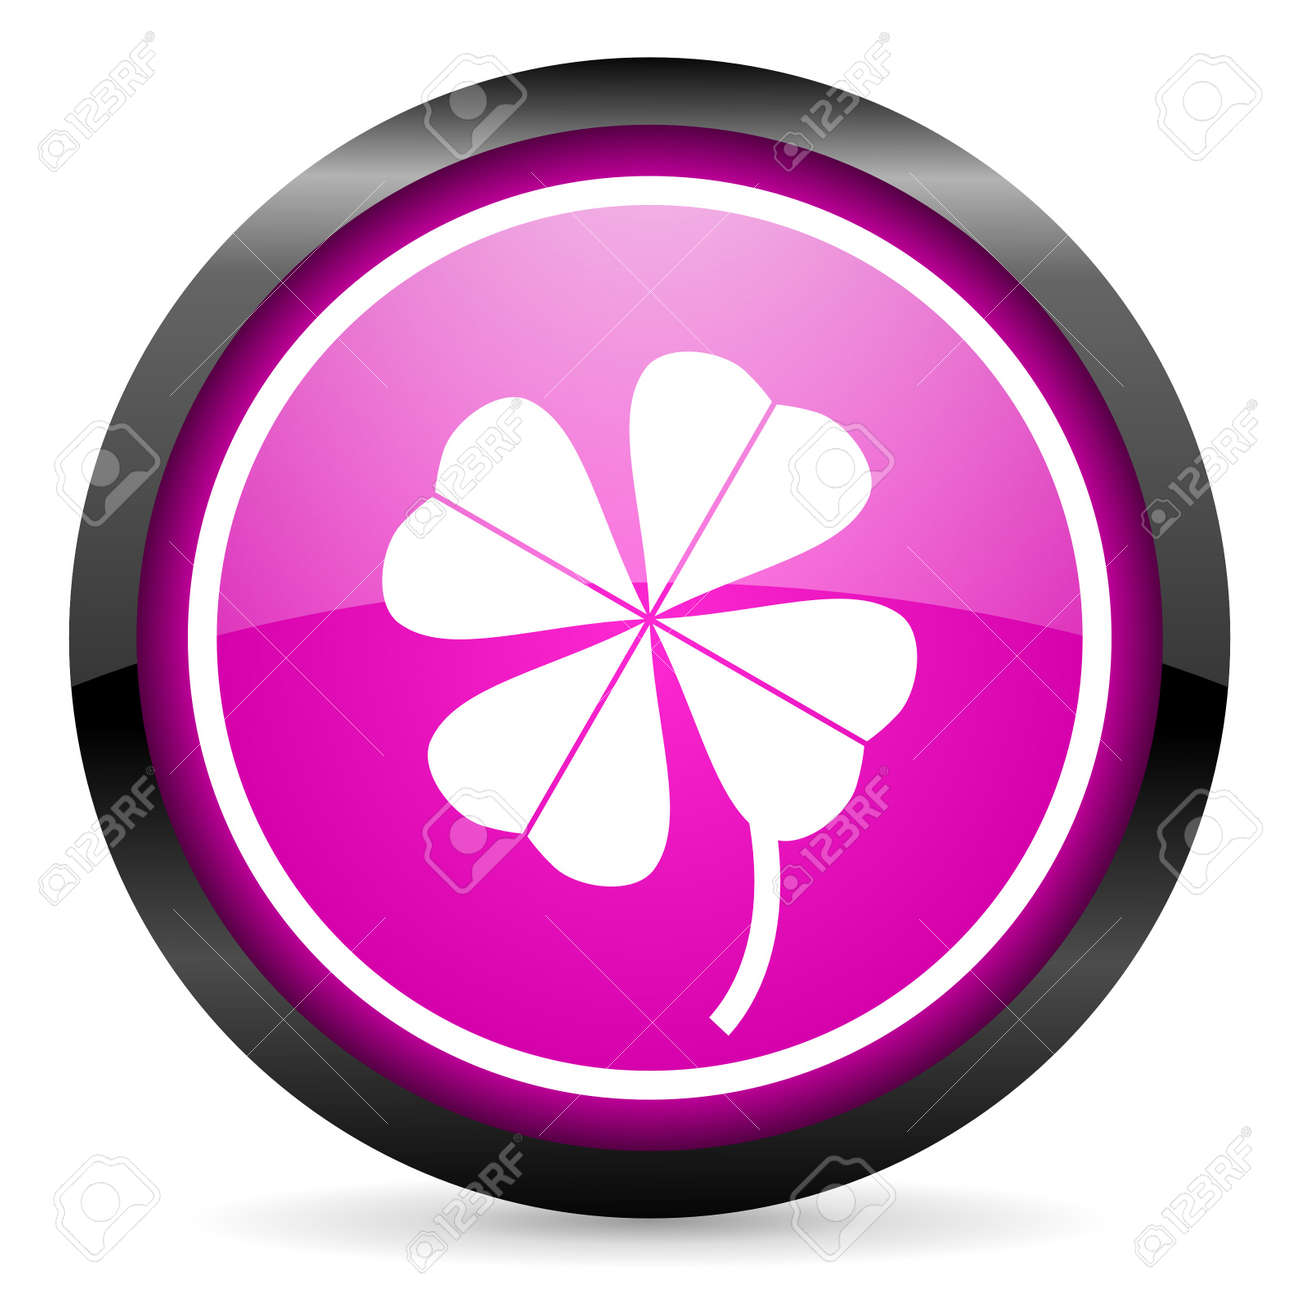 four-leaf clover violet glossy icon on white background Stock Photo - 16955325